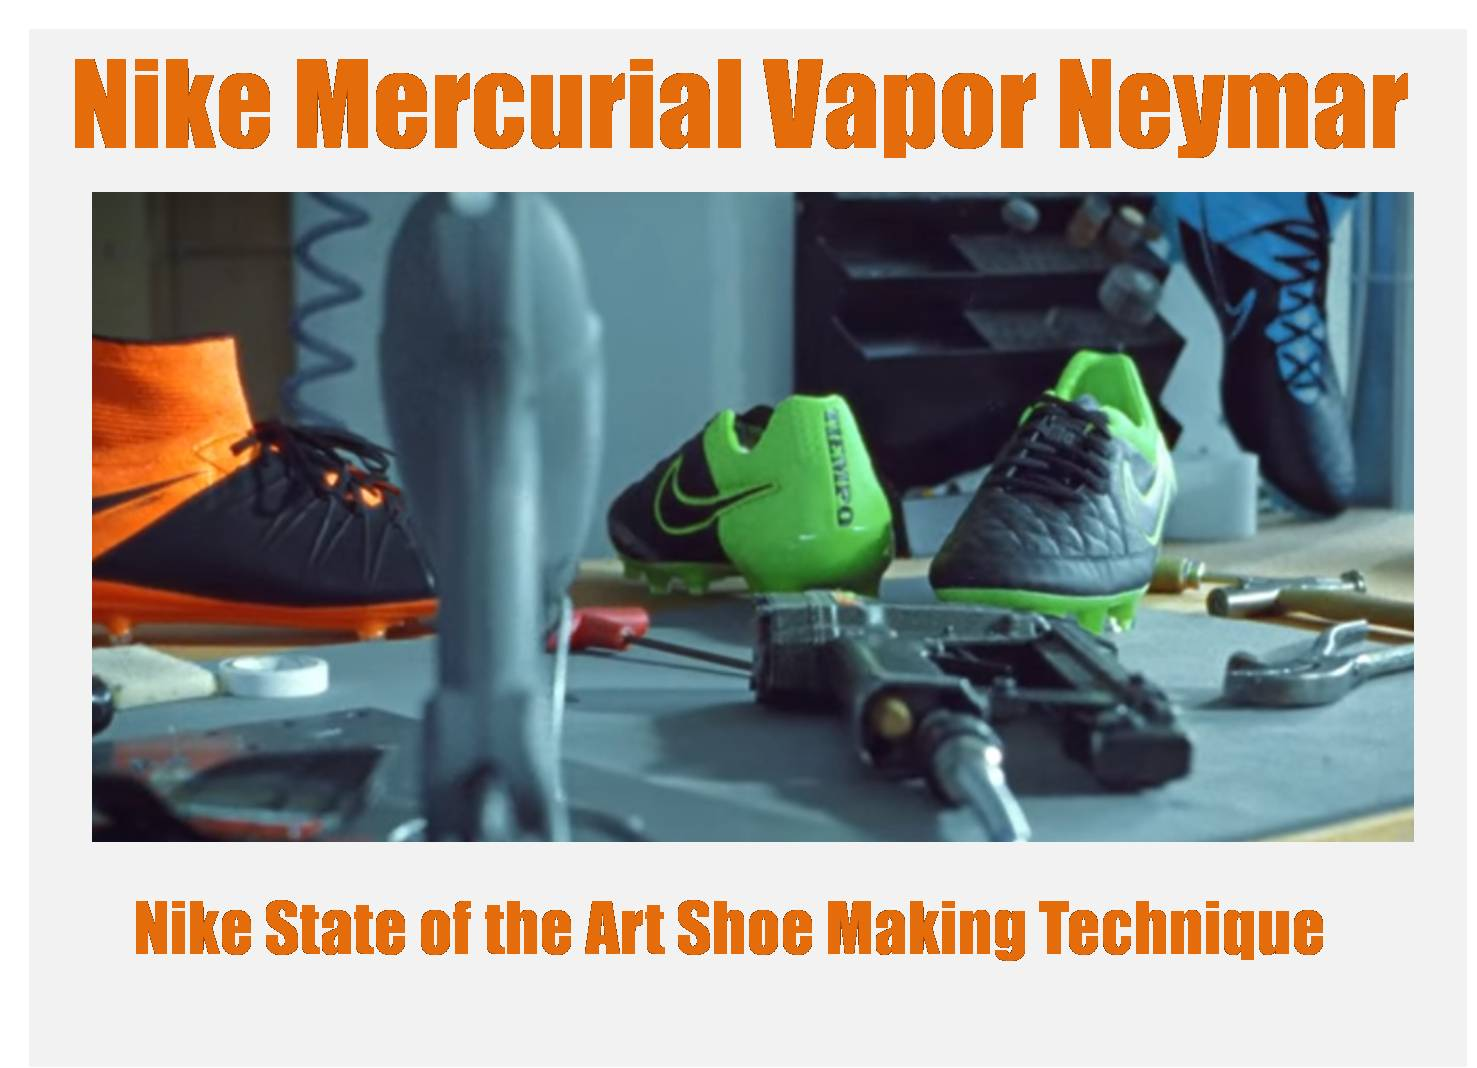 Nike_Mercurial_Vapor_Neymar_football_Shoes_Review_02_technology.jpg